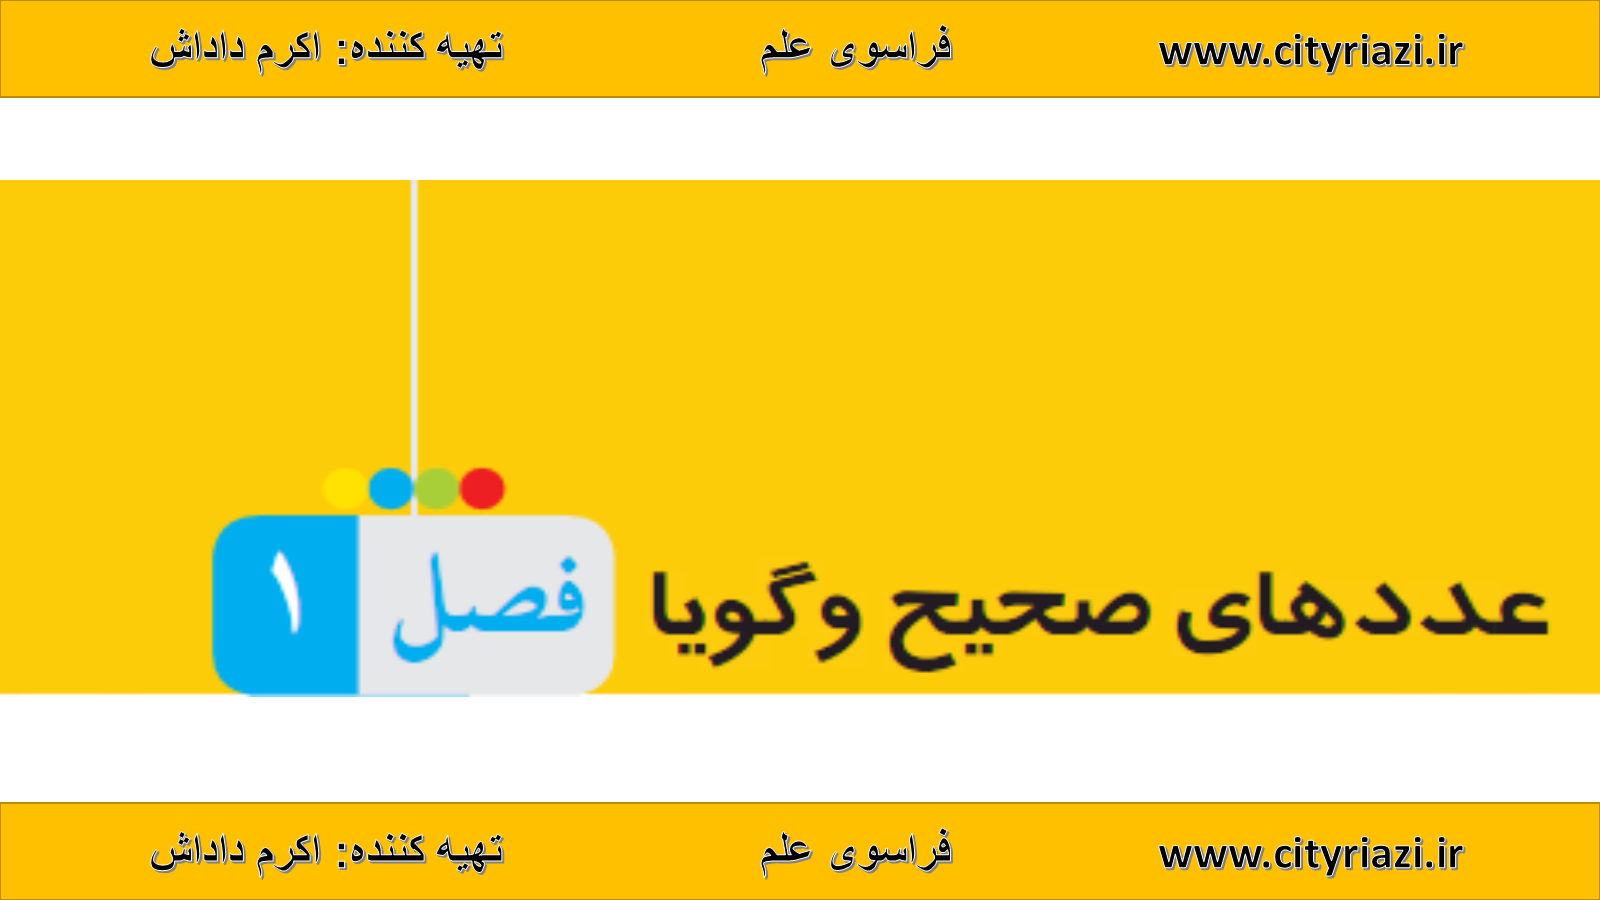 http://cld.persiangig.com/preview/o6P23fnVvn/Picture1.png